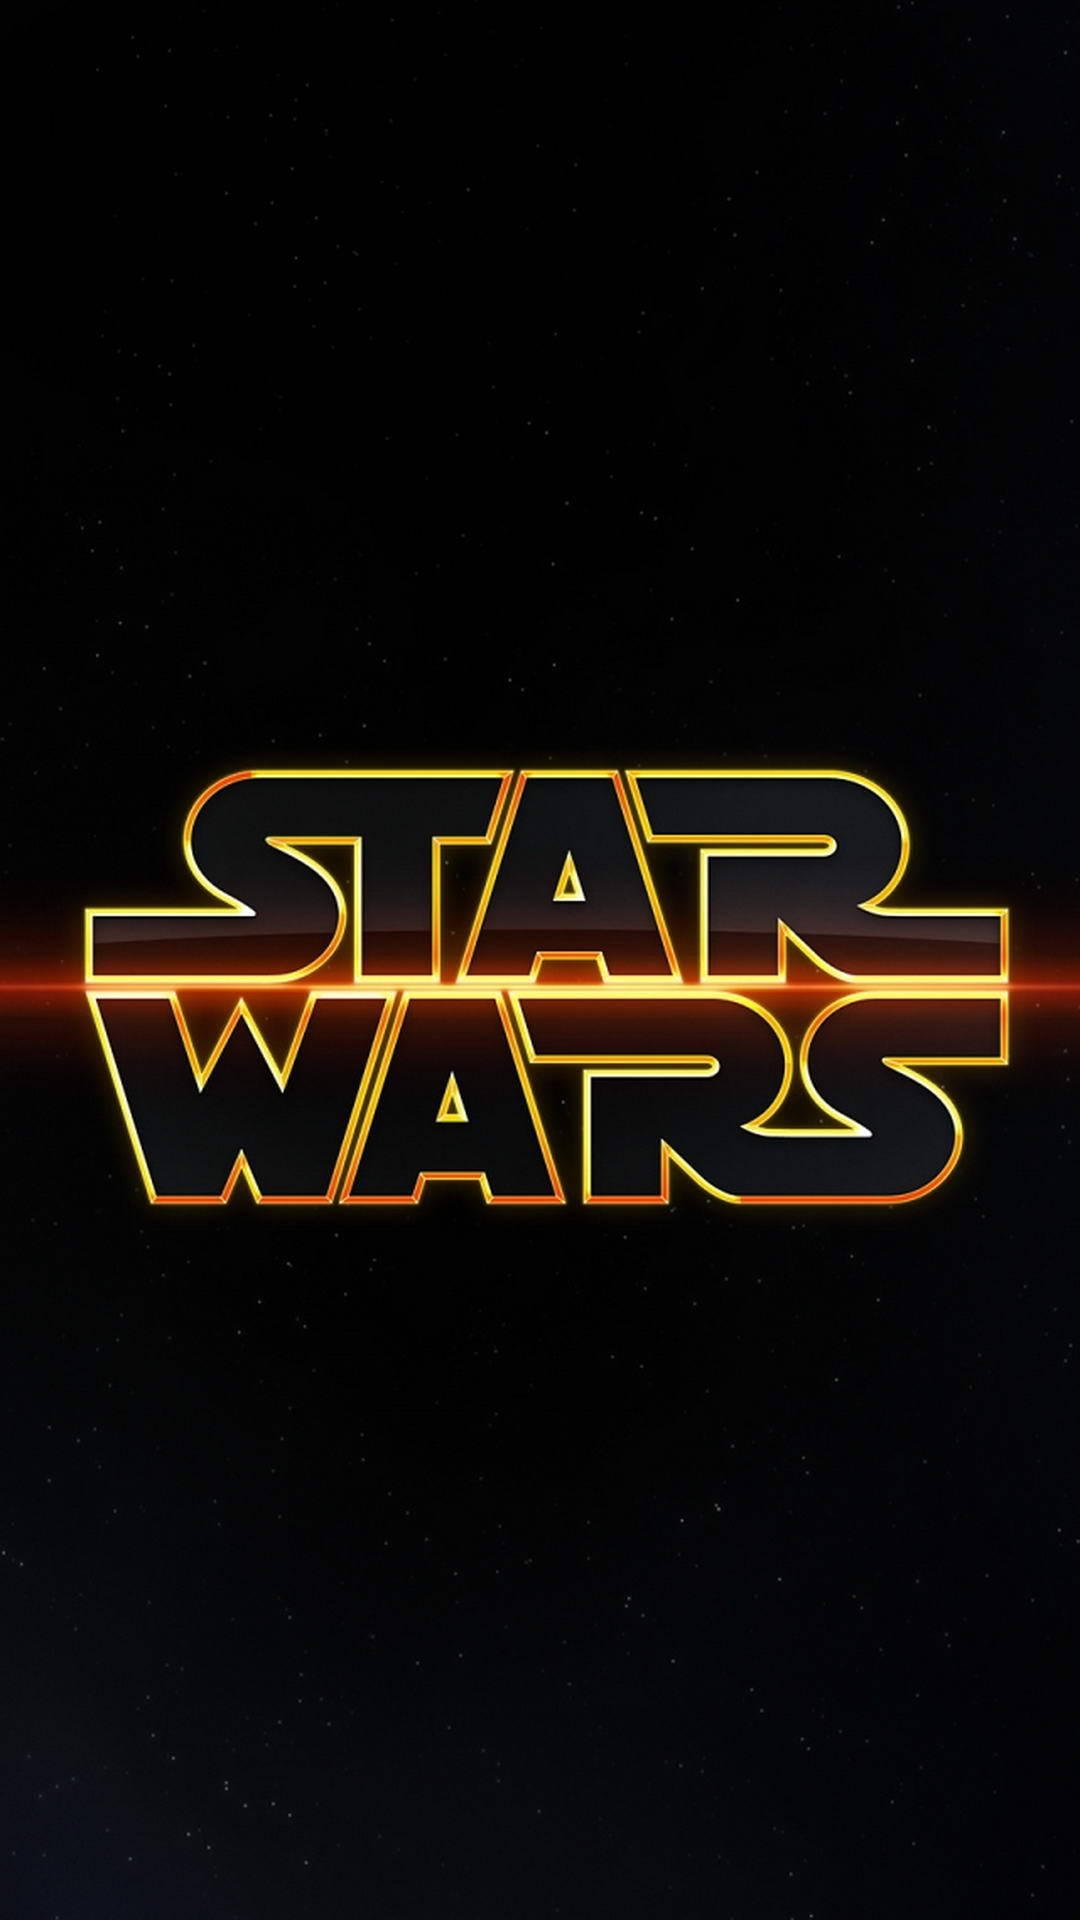 star-wars-classic-logo-android-wallpaper